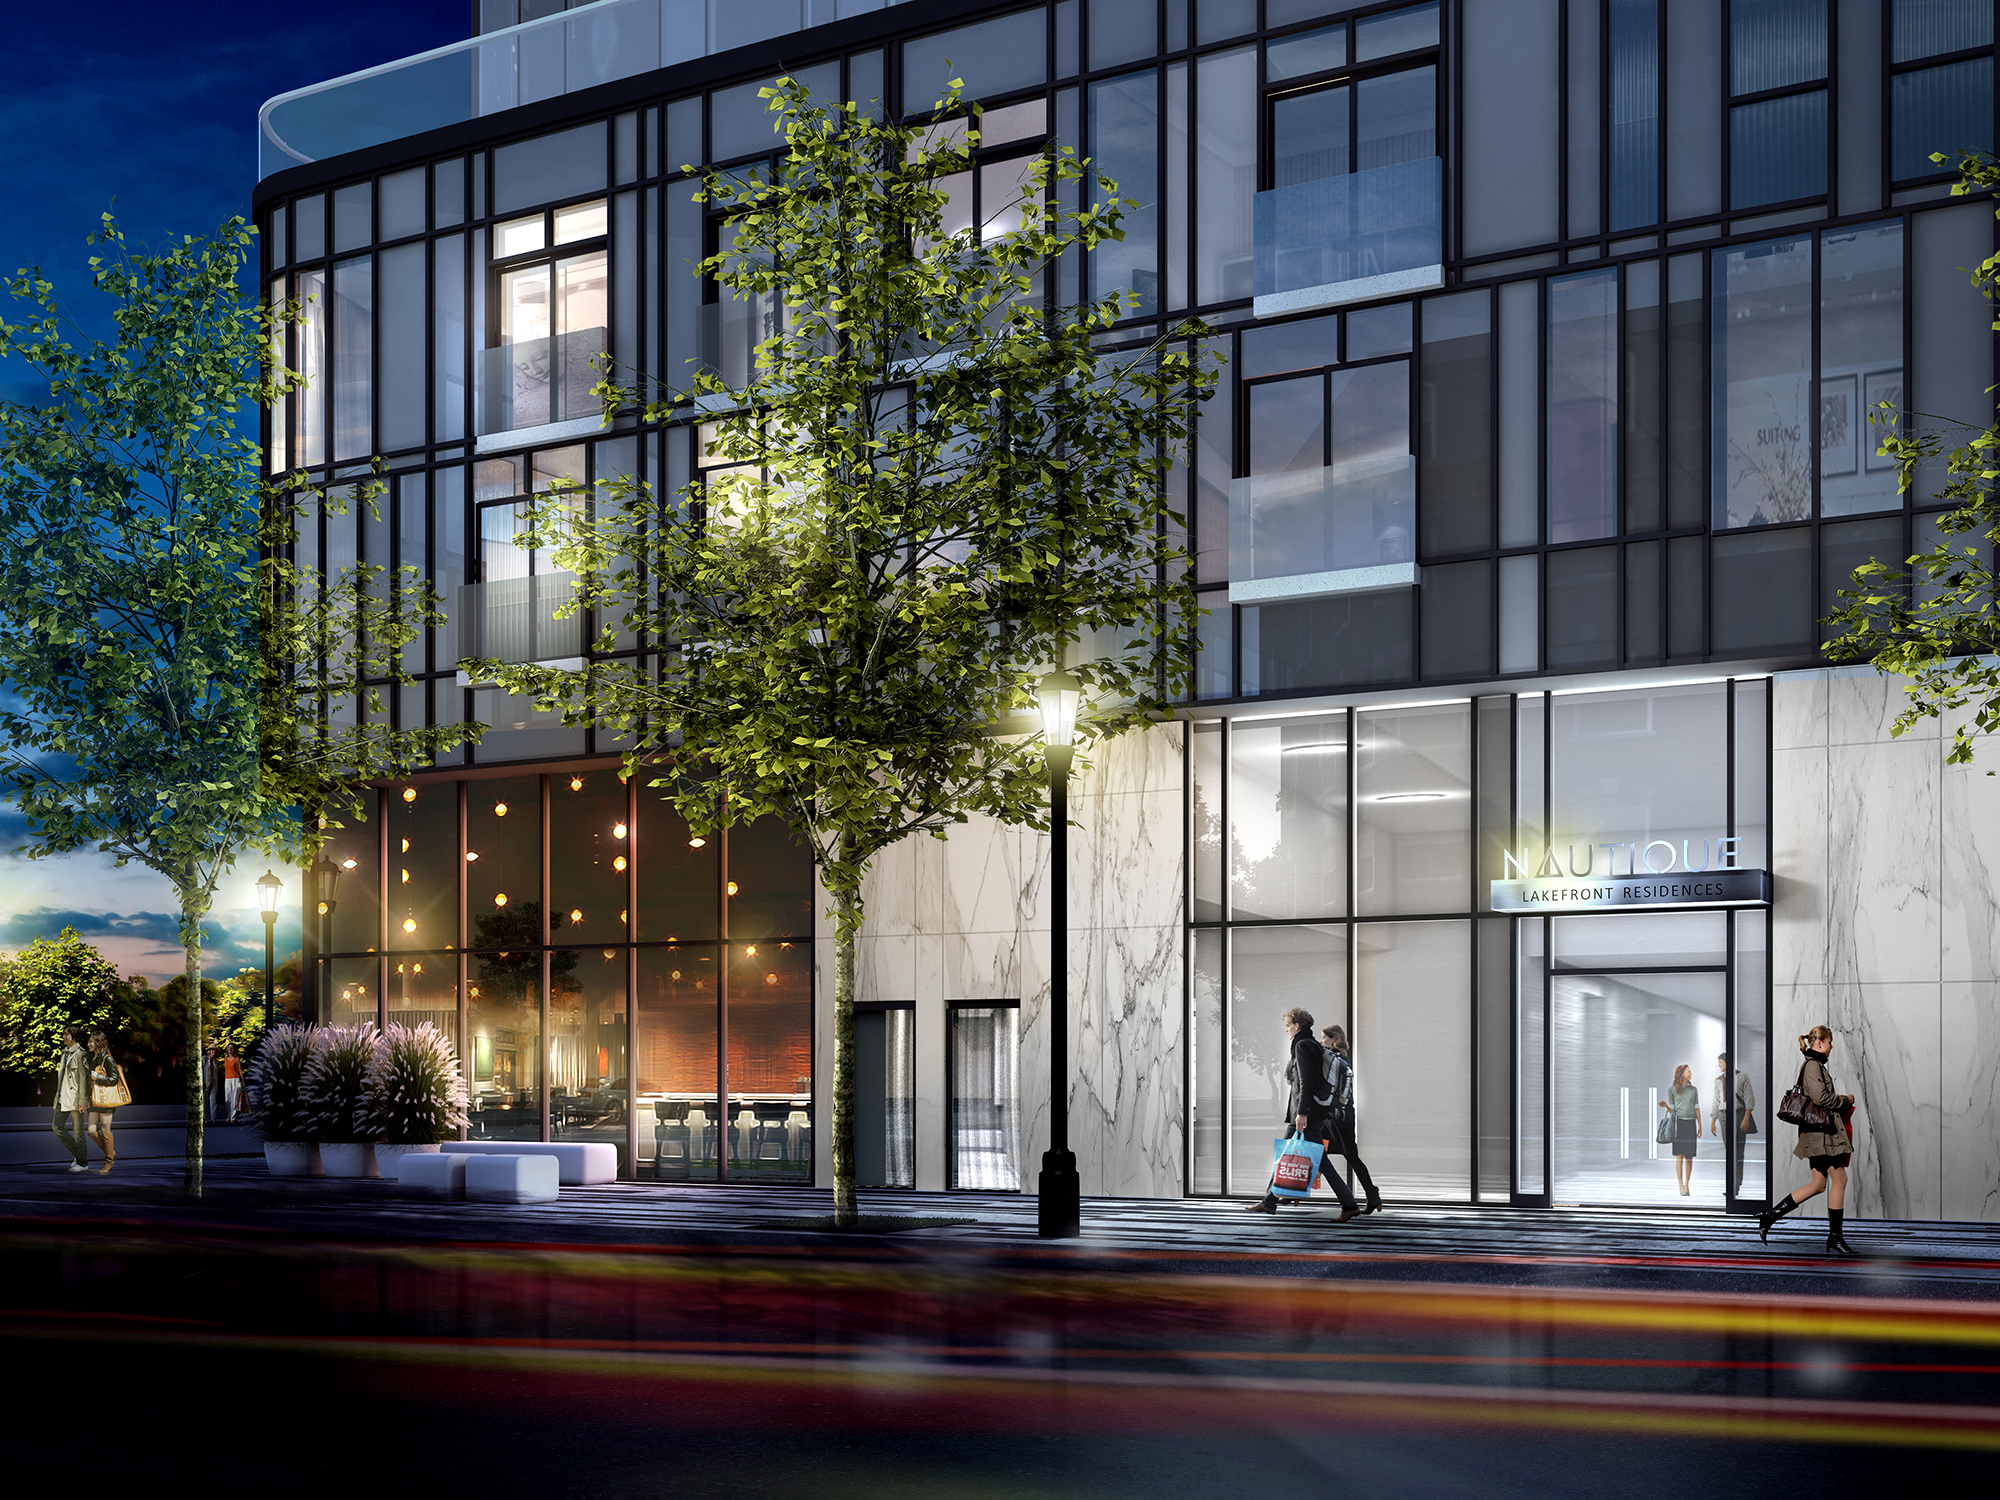 Nautique's main level includes double height retail space along Lakeshore Road